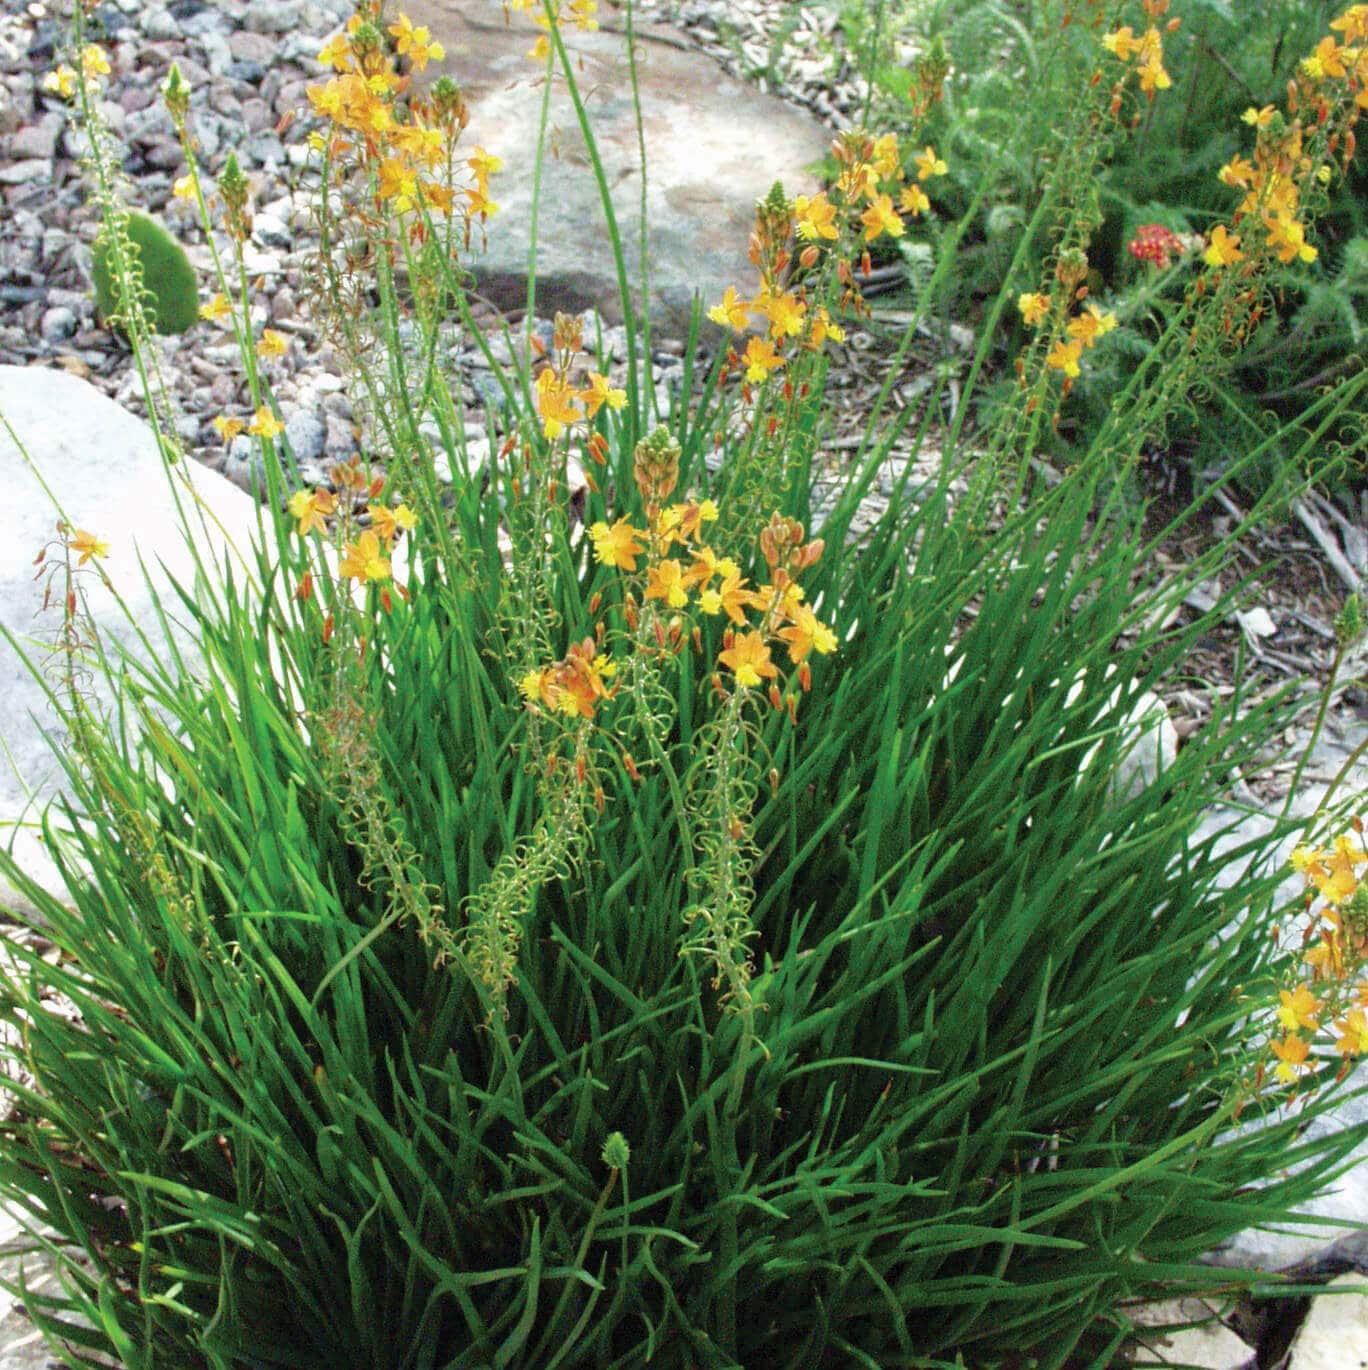 Drought Tolerant Landscaping Photos: Drought Tolerant Plants For Dry Climates Like Texas With